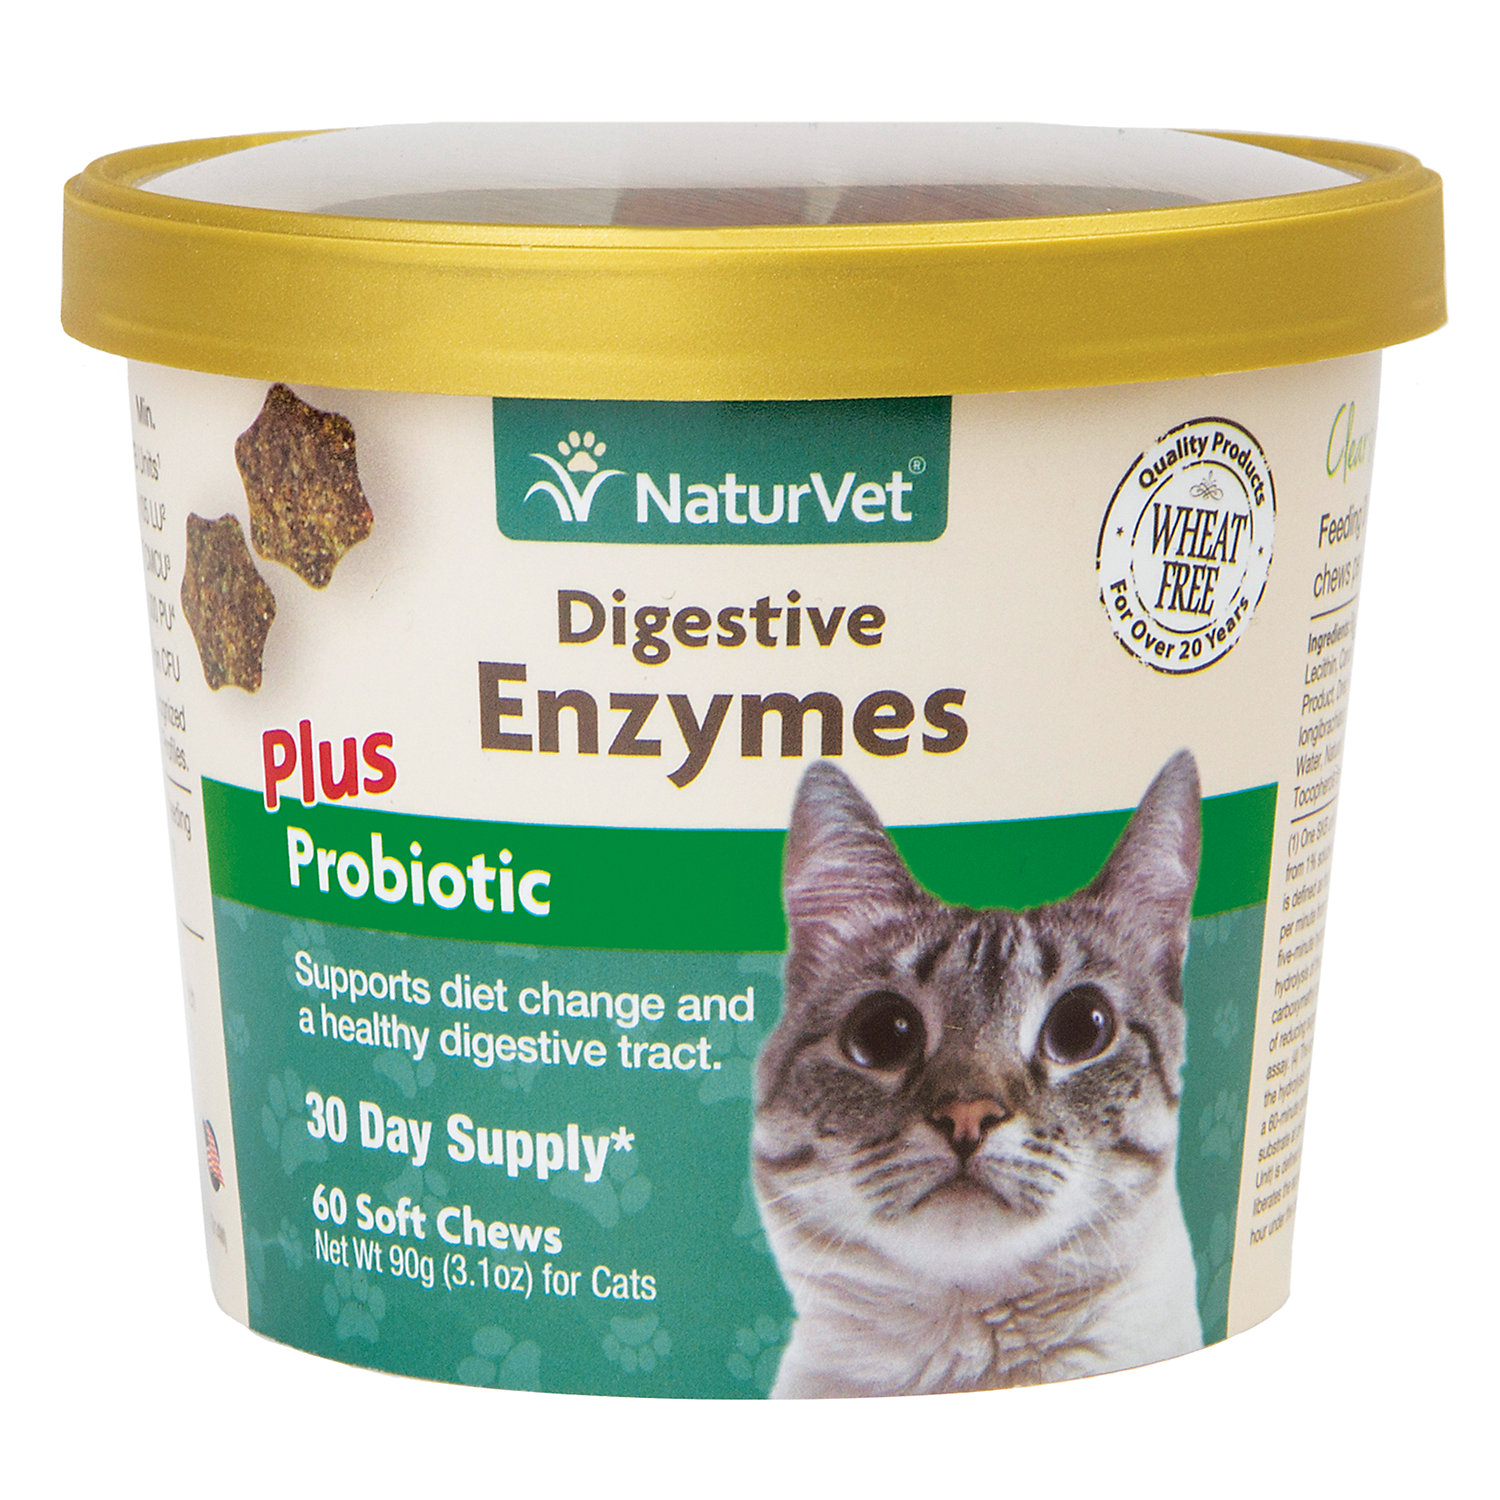 Naturvet Digestive Enzymes Cat Supplement Pack Of 60 Soft Chews